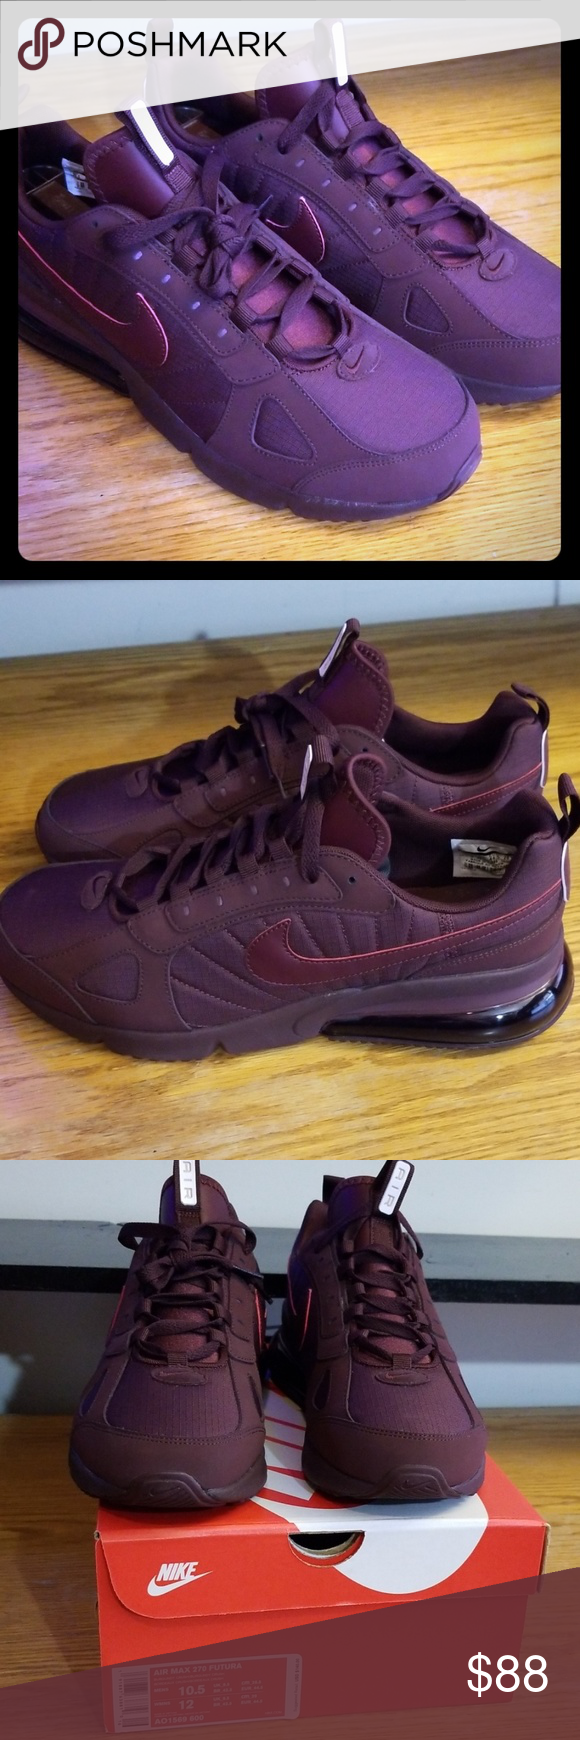 Nike Air Max 270 Futura Burgundy Crush 10.5 Brand New with